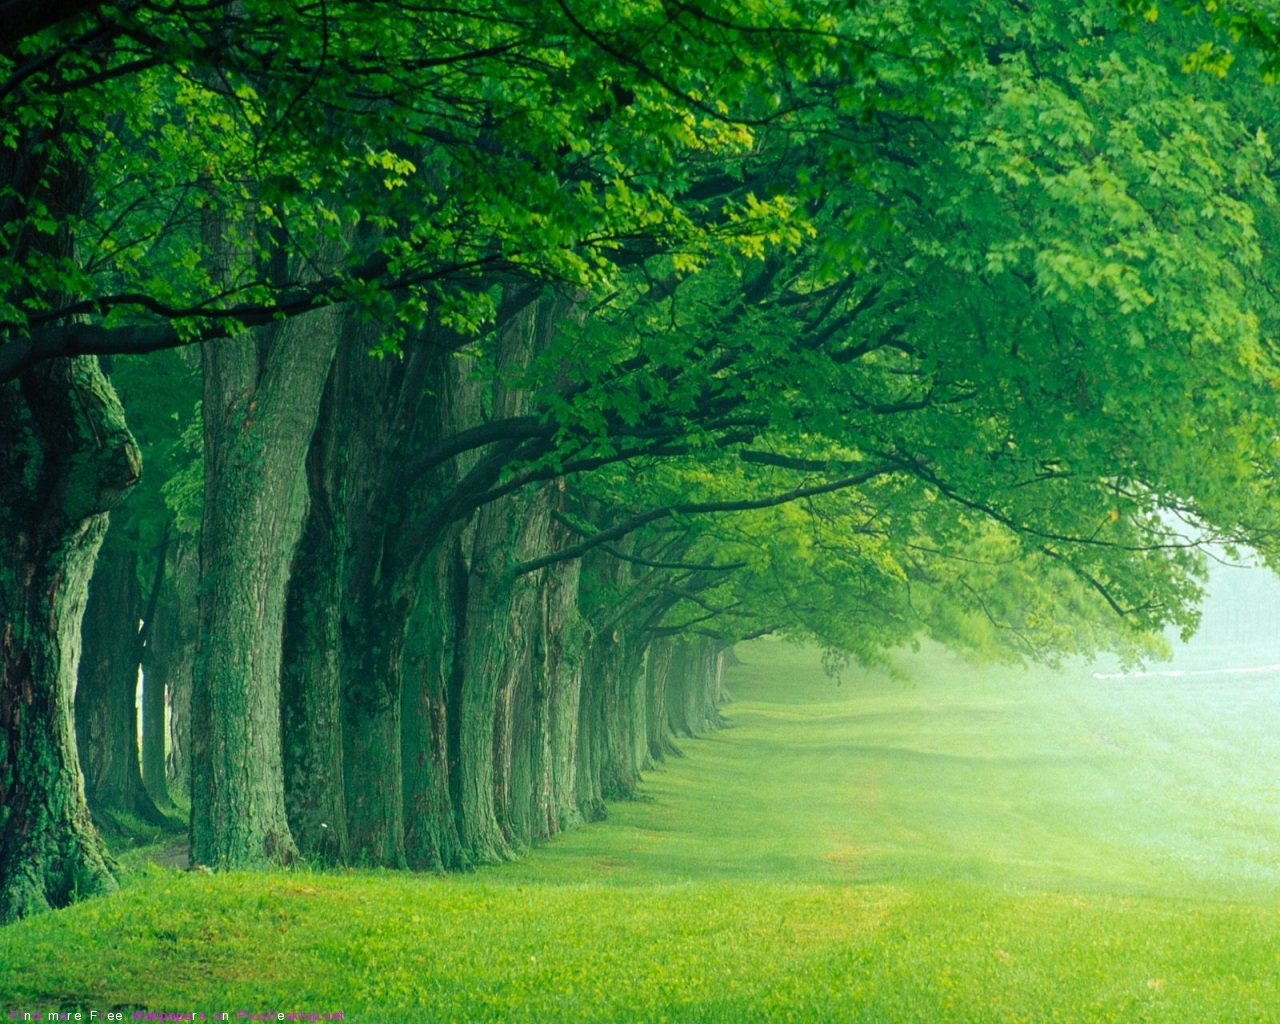 http://4.bp.blogspot.com/-aJmuMeYMz4s/UQvFUcbObeI/AAAAAAAAOgw/7DfzX3BcSUg/s1600/Green+Forest+Best+Trees+Position+Wallpaper.jpg